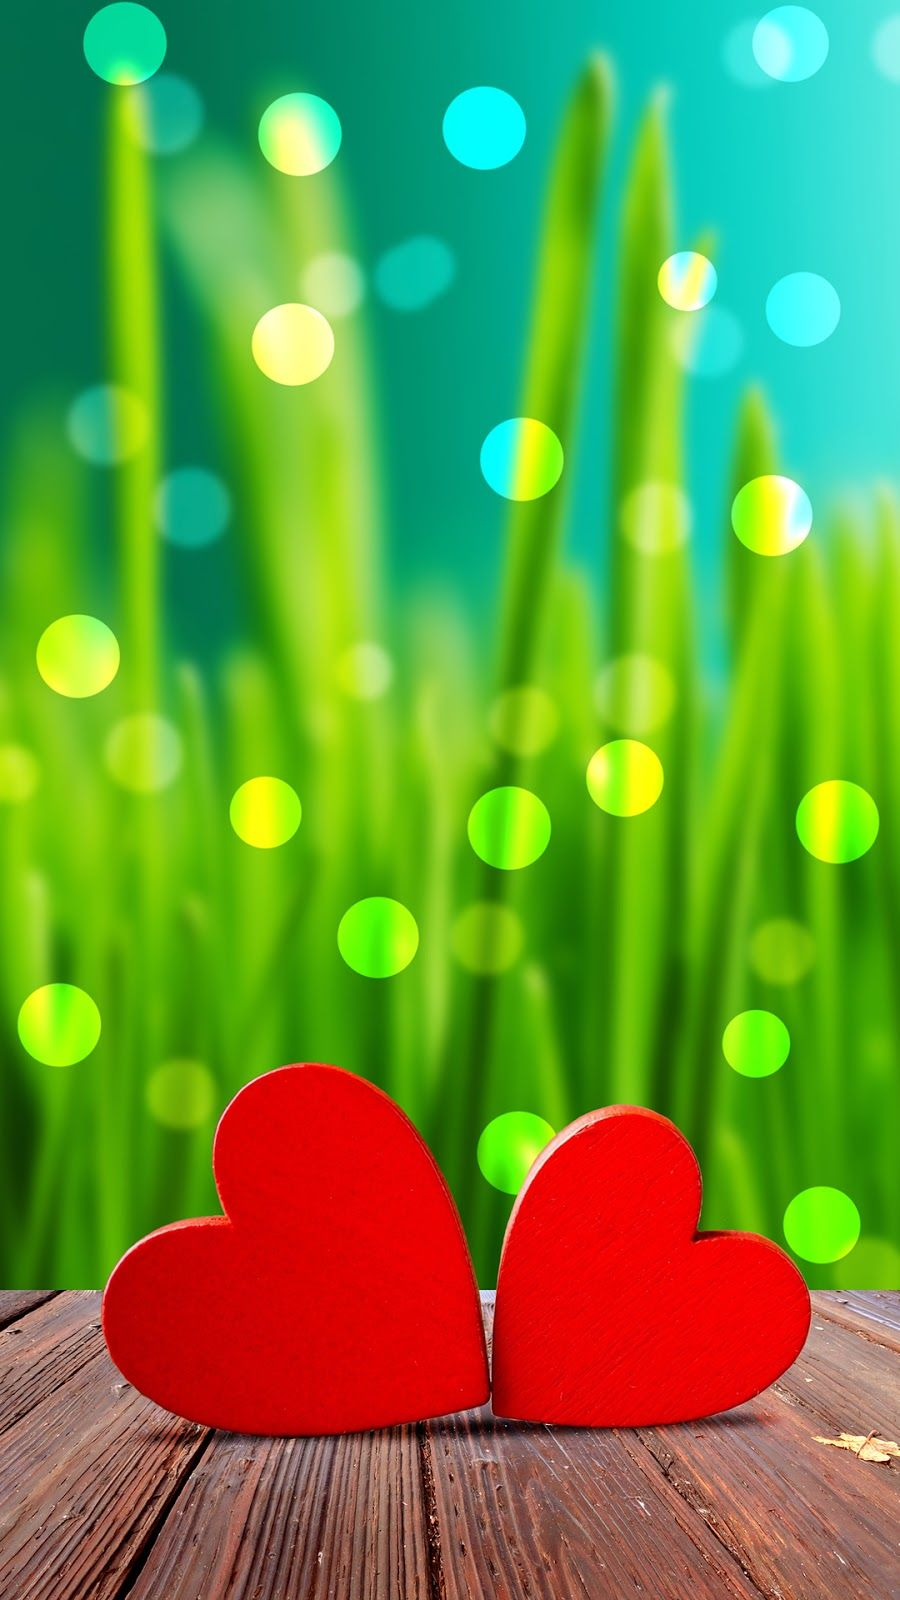 Cute Love Wallpaper iPhone 6S Plus Cute love wallpapers